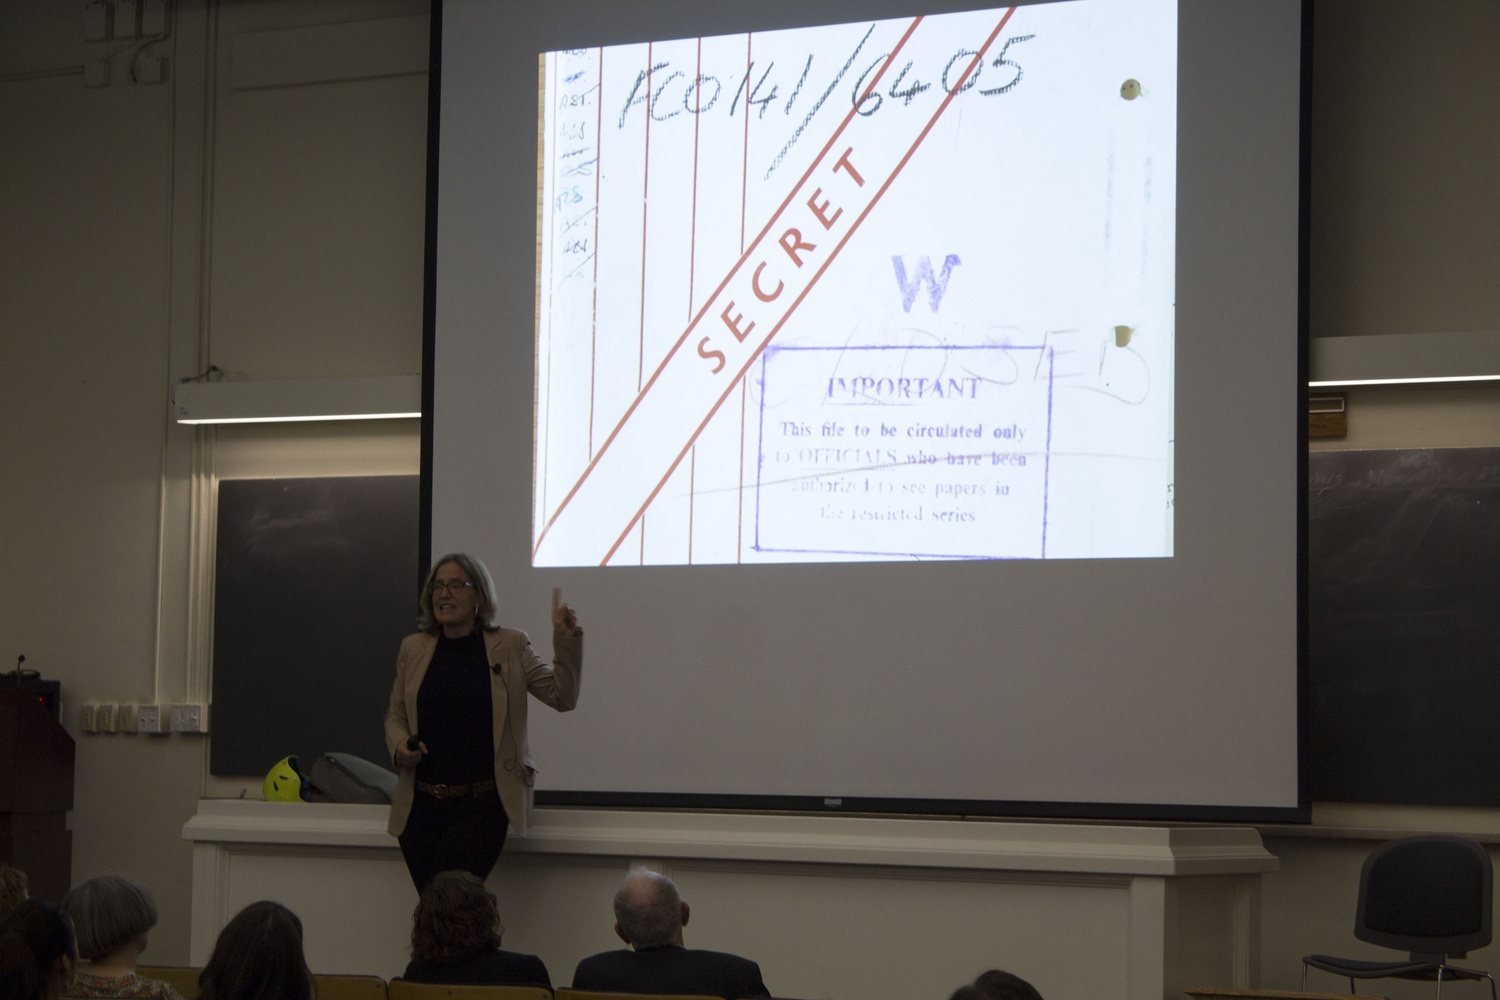 History professor Caroline Elkins shares a picture of a confidential document she found while working as an expert witness in a legal case brought by Kenyan independence movement participants against the British government. Her work on the case exemplified how historical research can contribute to the progress of contemporary social and political developments.